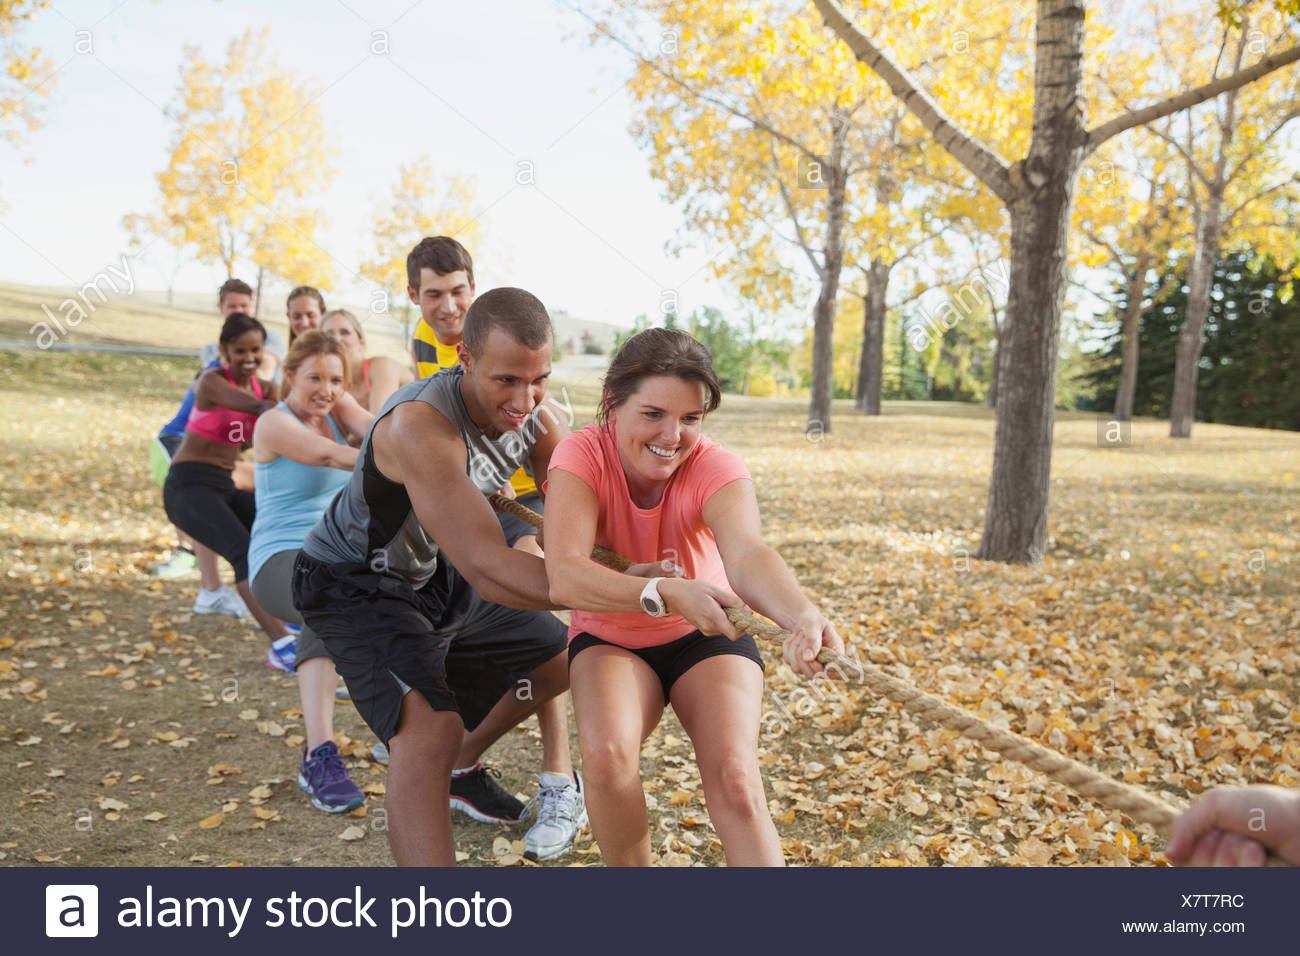 Fitness class doing tug of war outdoors. - Stock Image